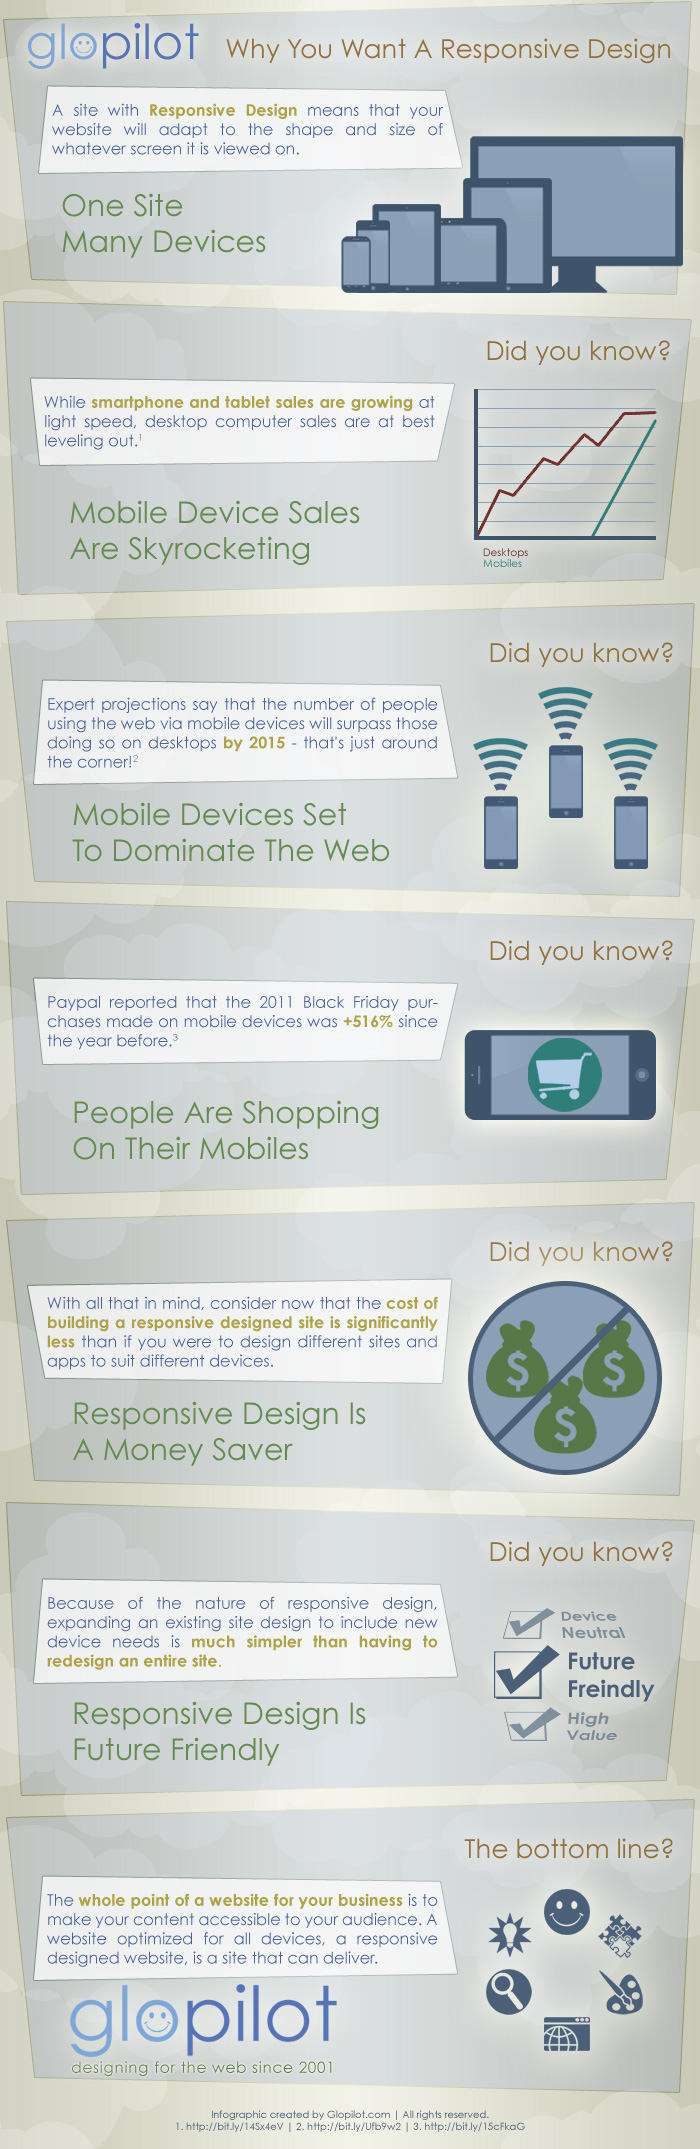 A Responsive Design is future friendly and less expensive than the alternatives.